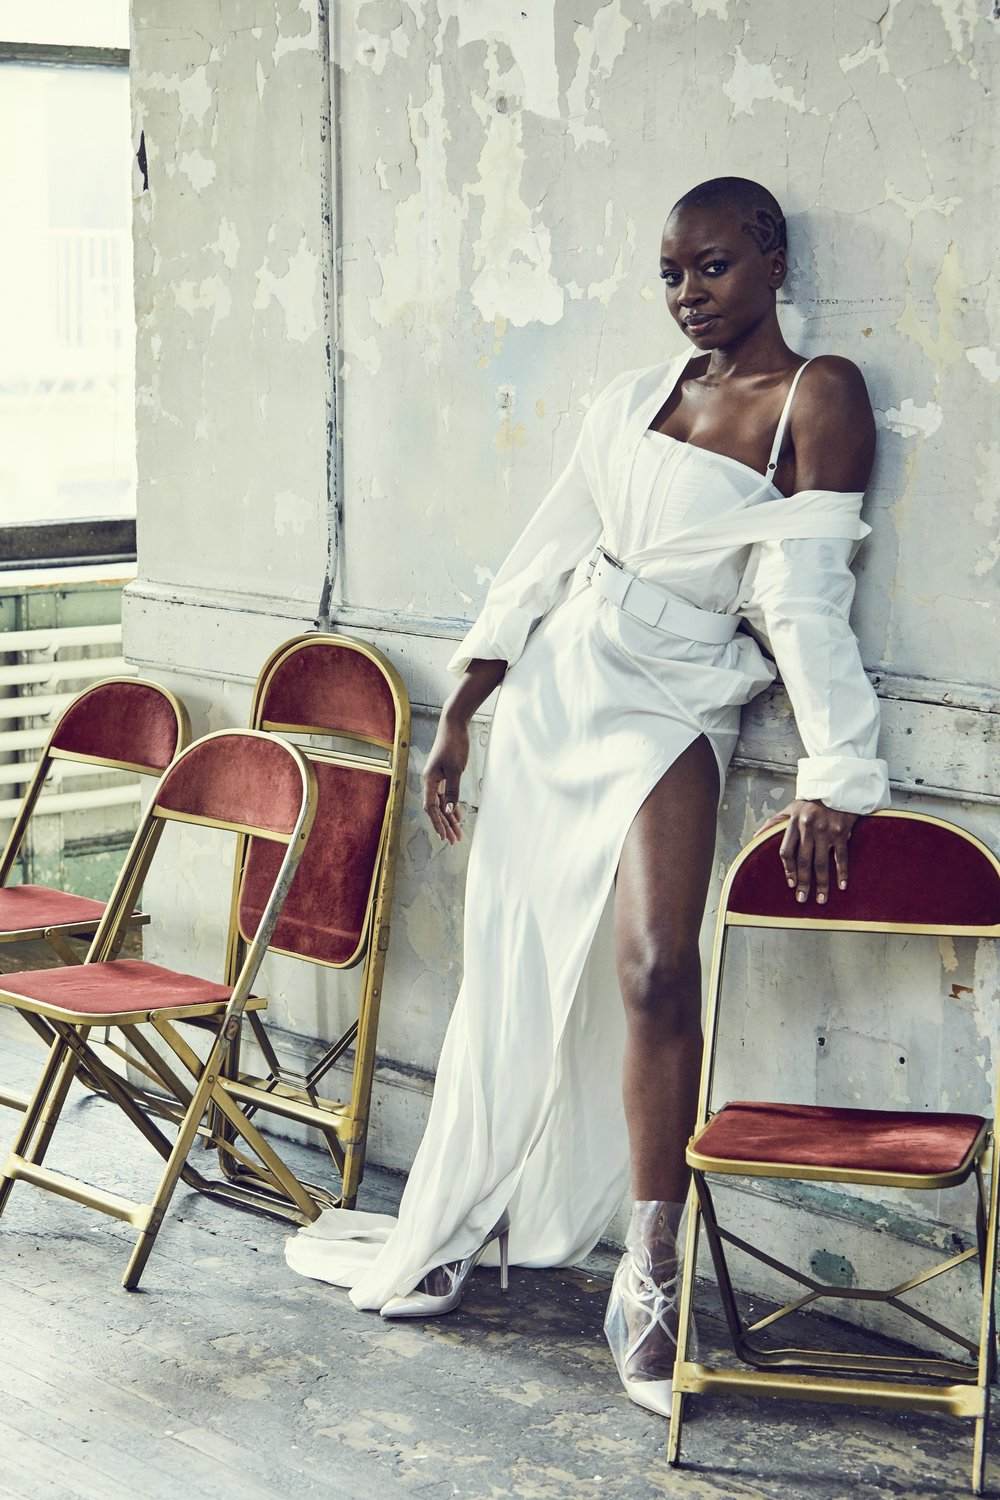 Danai Gurira - Dress & Bustier: Vera Wangn CollectionBelt: Michael Kors CollectionShoes: Off-White c/o Jimmy Choo